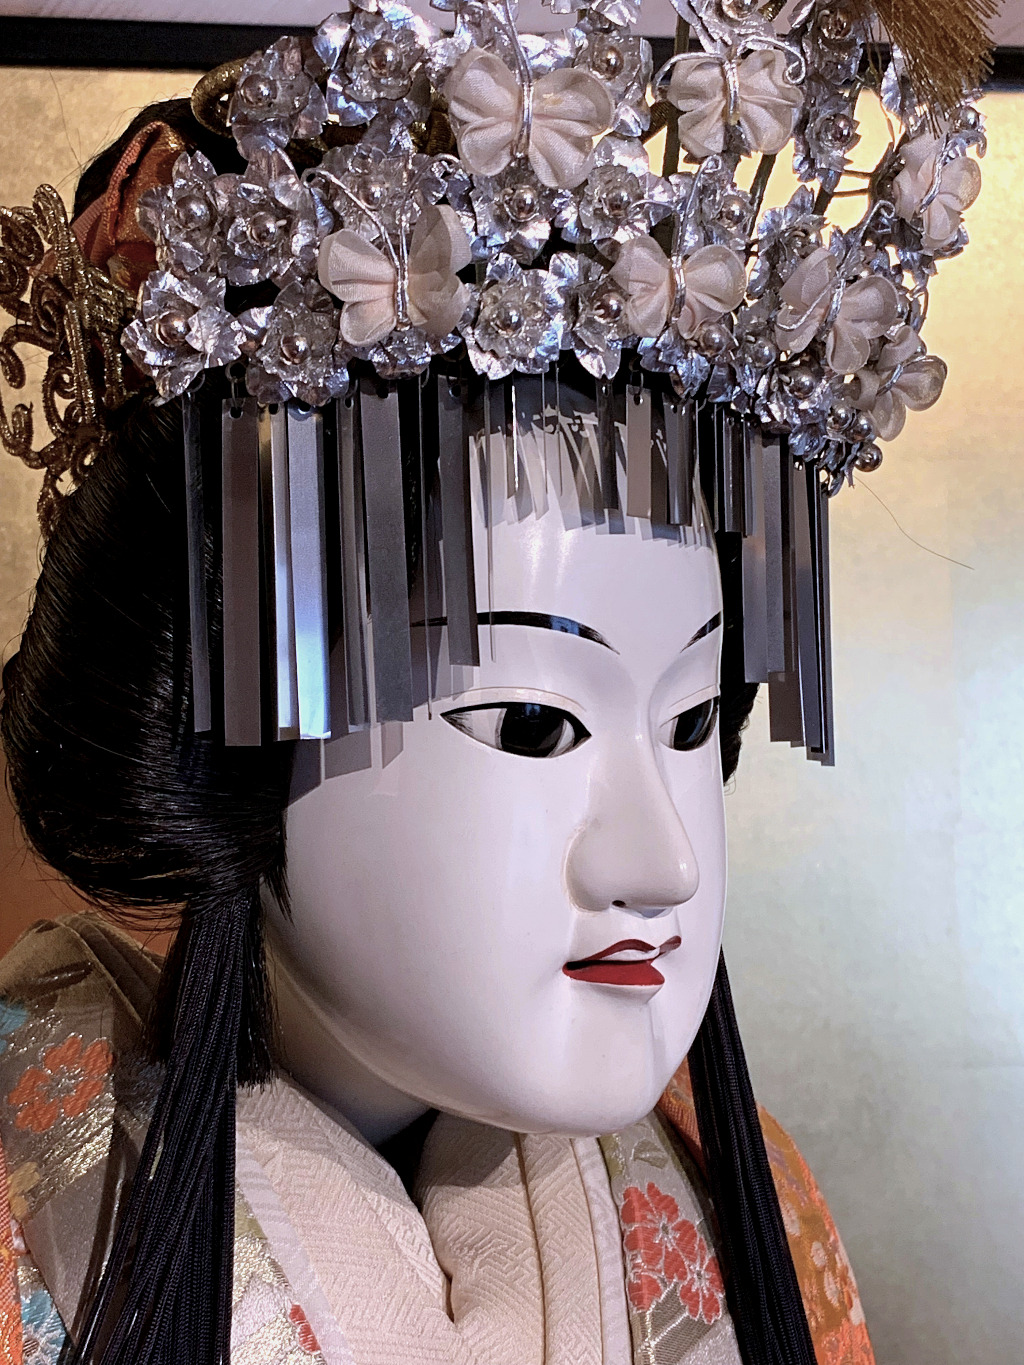 female bunraku doll at the Dolls Museum in Nishi Chaya, Kanazawa's western geisha district